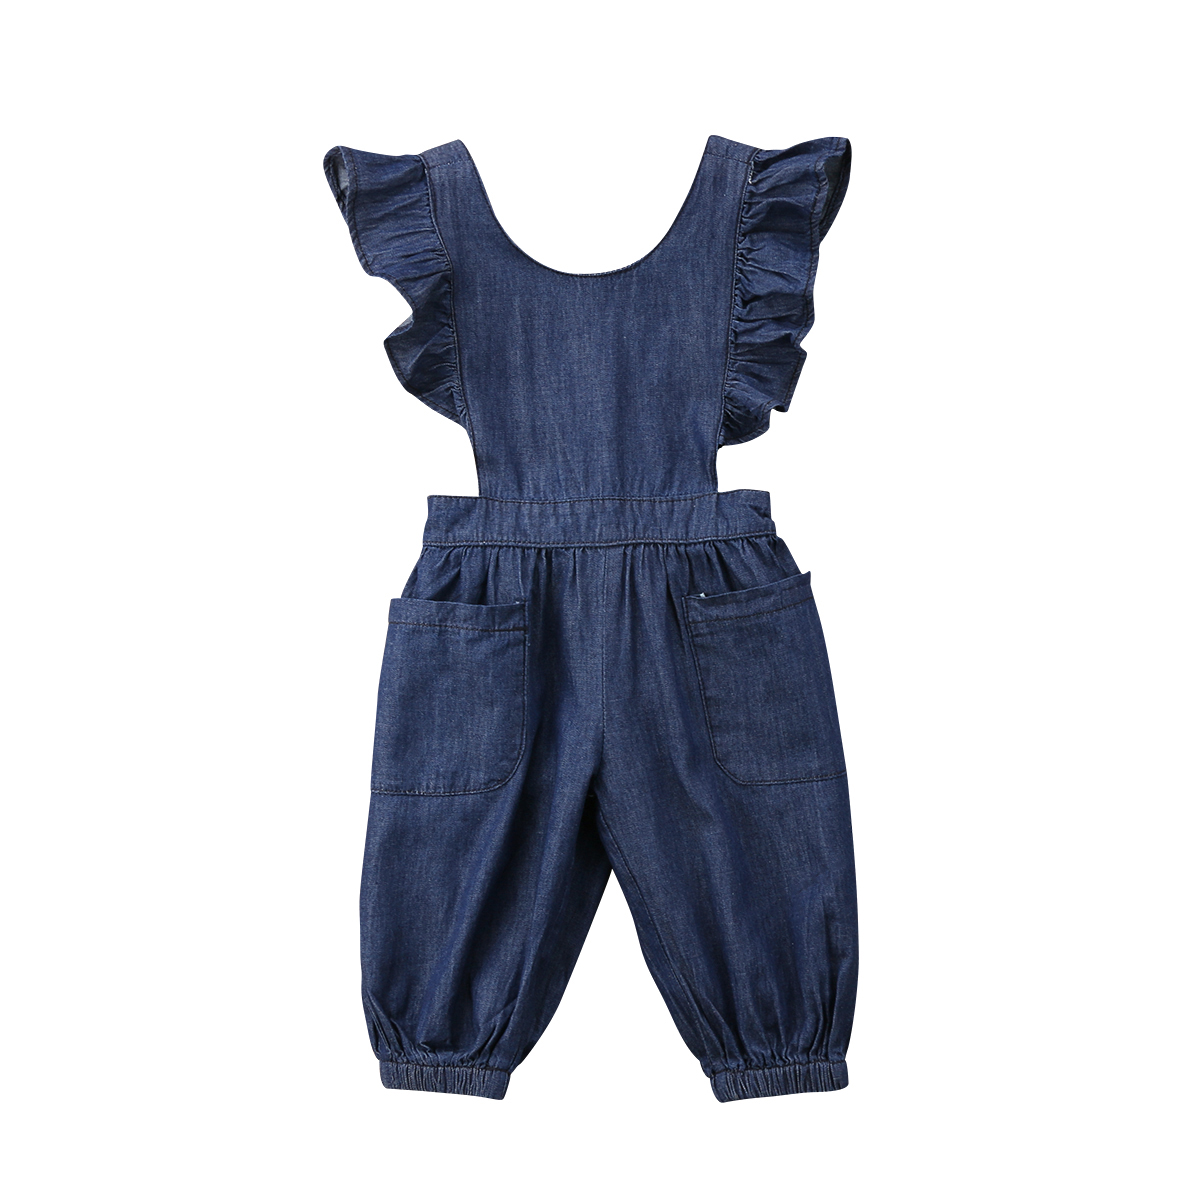 Bodysuits Toddler Kids Baby Girls Romper Solid Ruffle Denim Ruffle Sleeveless Rompers Blue Jumpsuit Outfits Girl Clothing Cute Clothes Mother & Kids